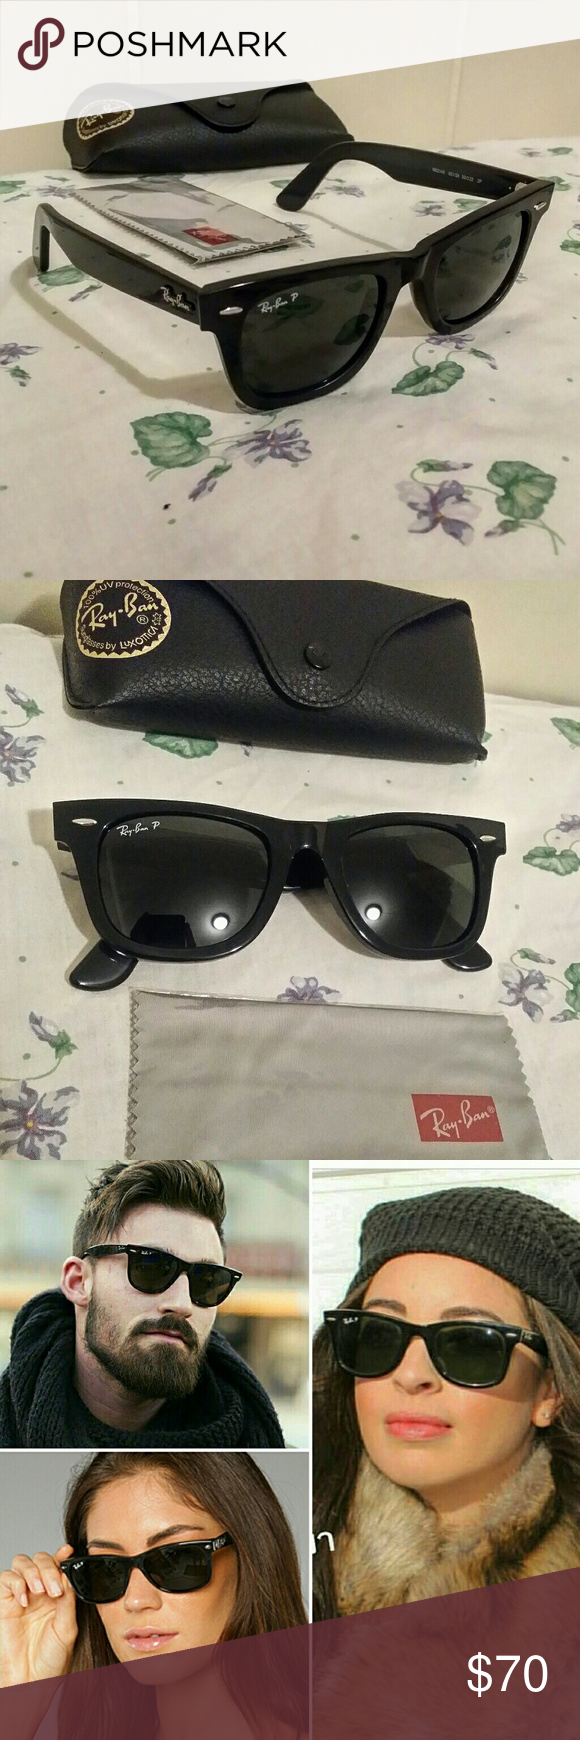 d20f0f2462 ... spain rayban polarized wayfarer sunglasses rayban wayfarer polarized  rb2140 size medium unisex 50mm black frame polarized